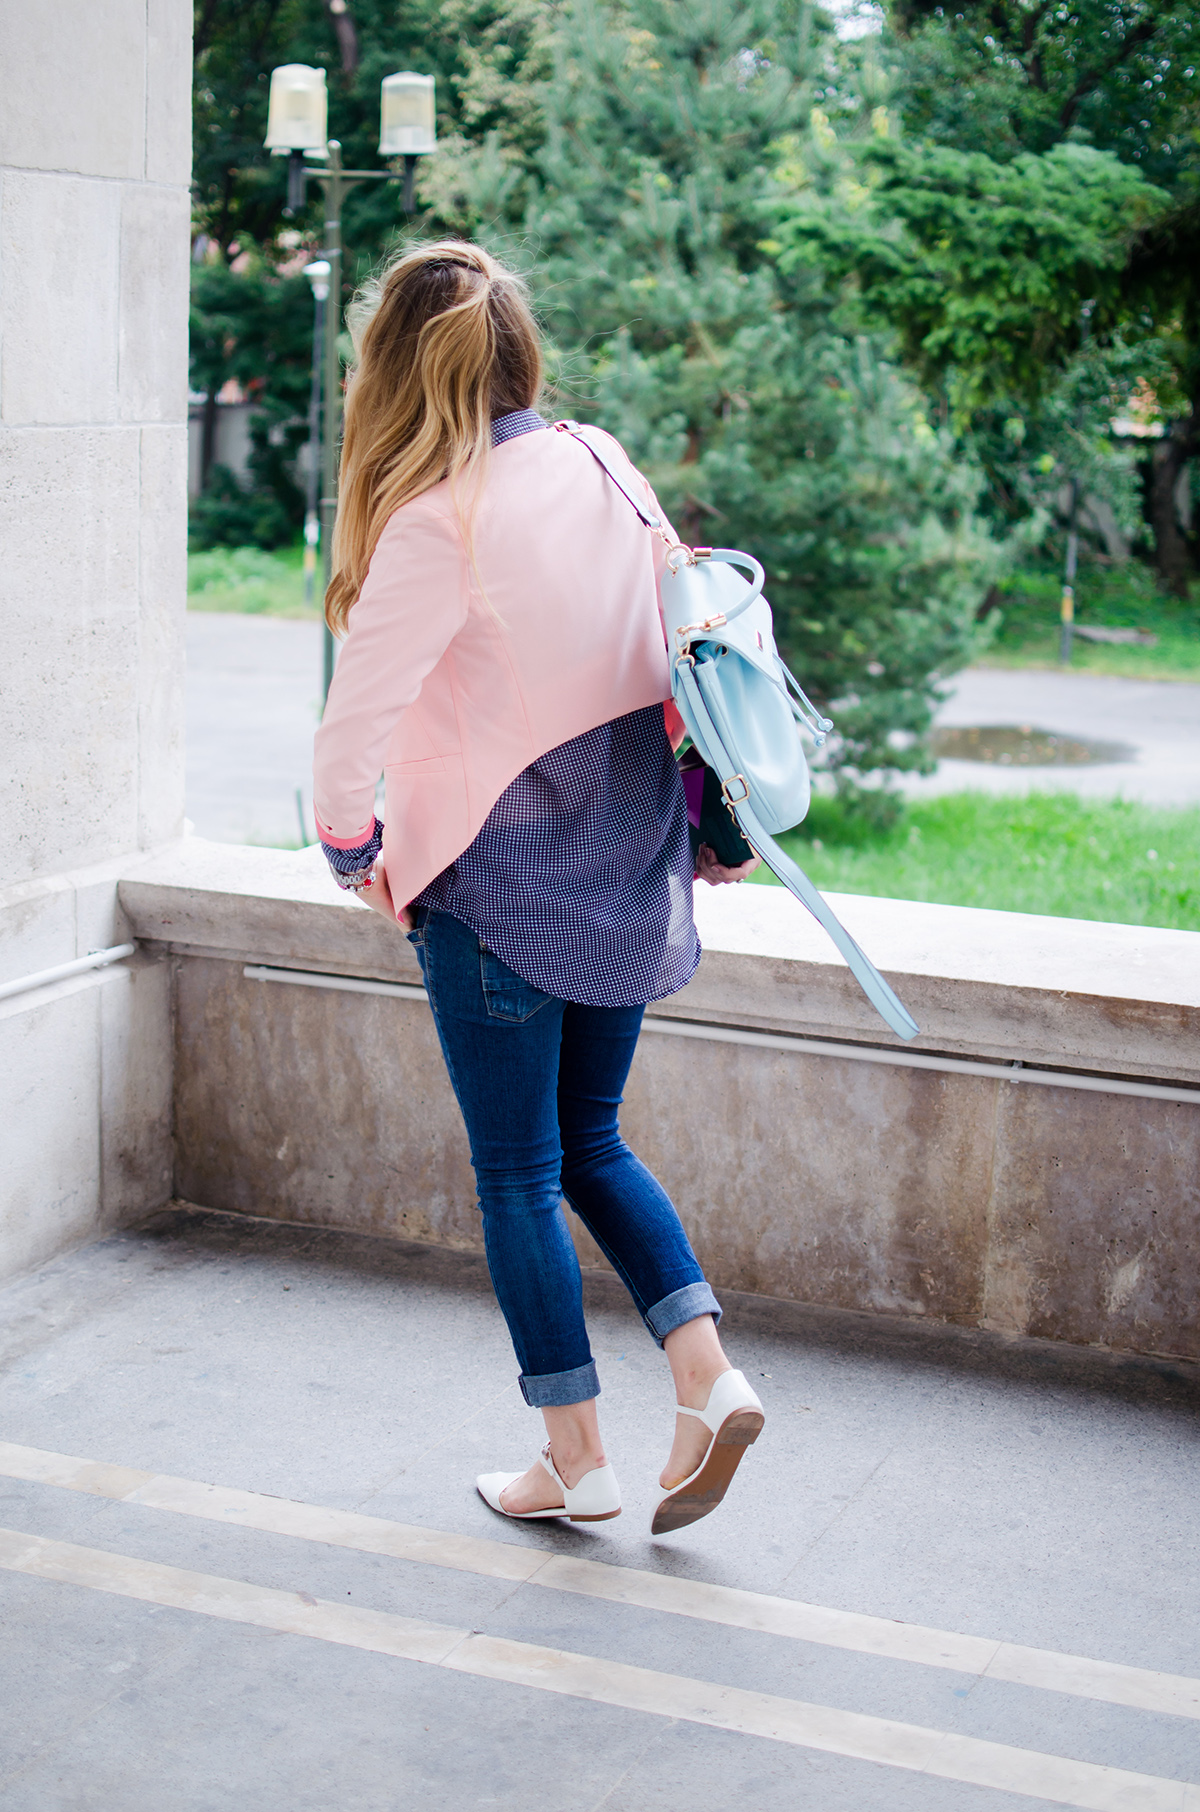 pink-blazer-skinny-jeans-white-pointed-flats-blue-backback-back-to-college (6)